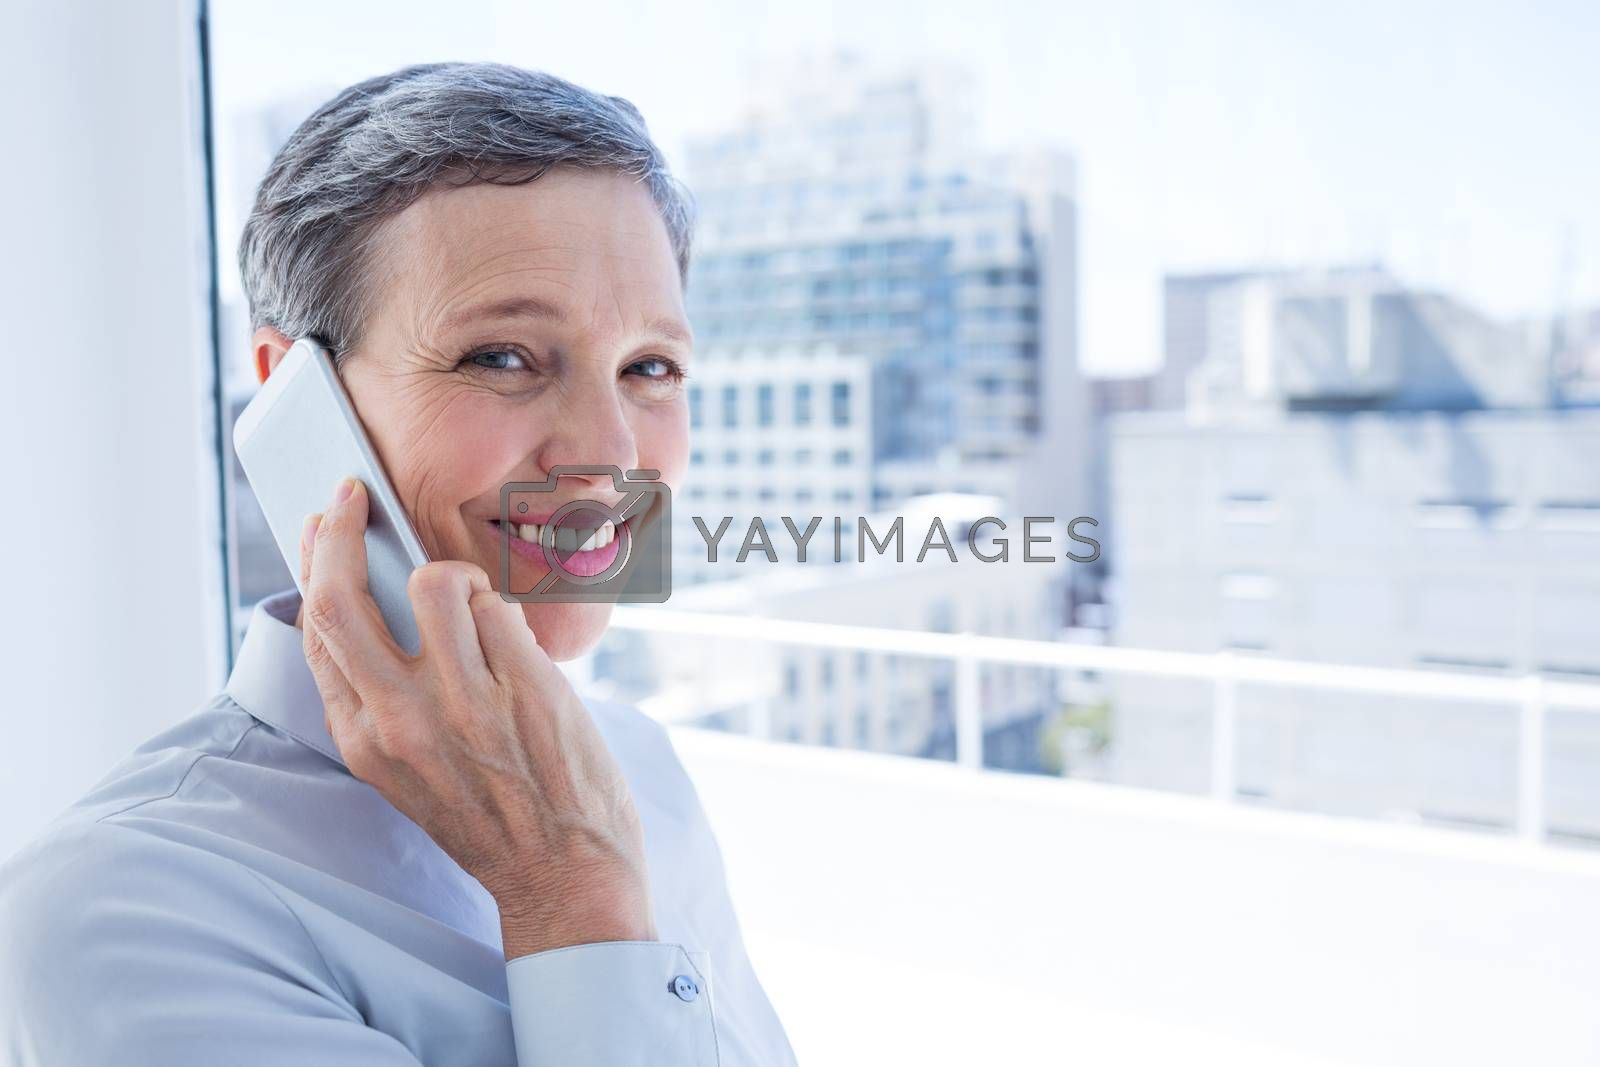 Royalty free image of Businesswoman looking at camera while on the phone by Wavebreakmedia